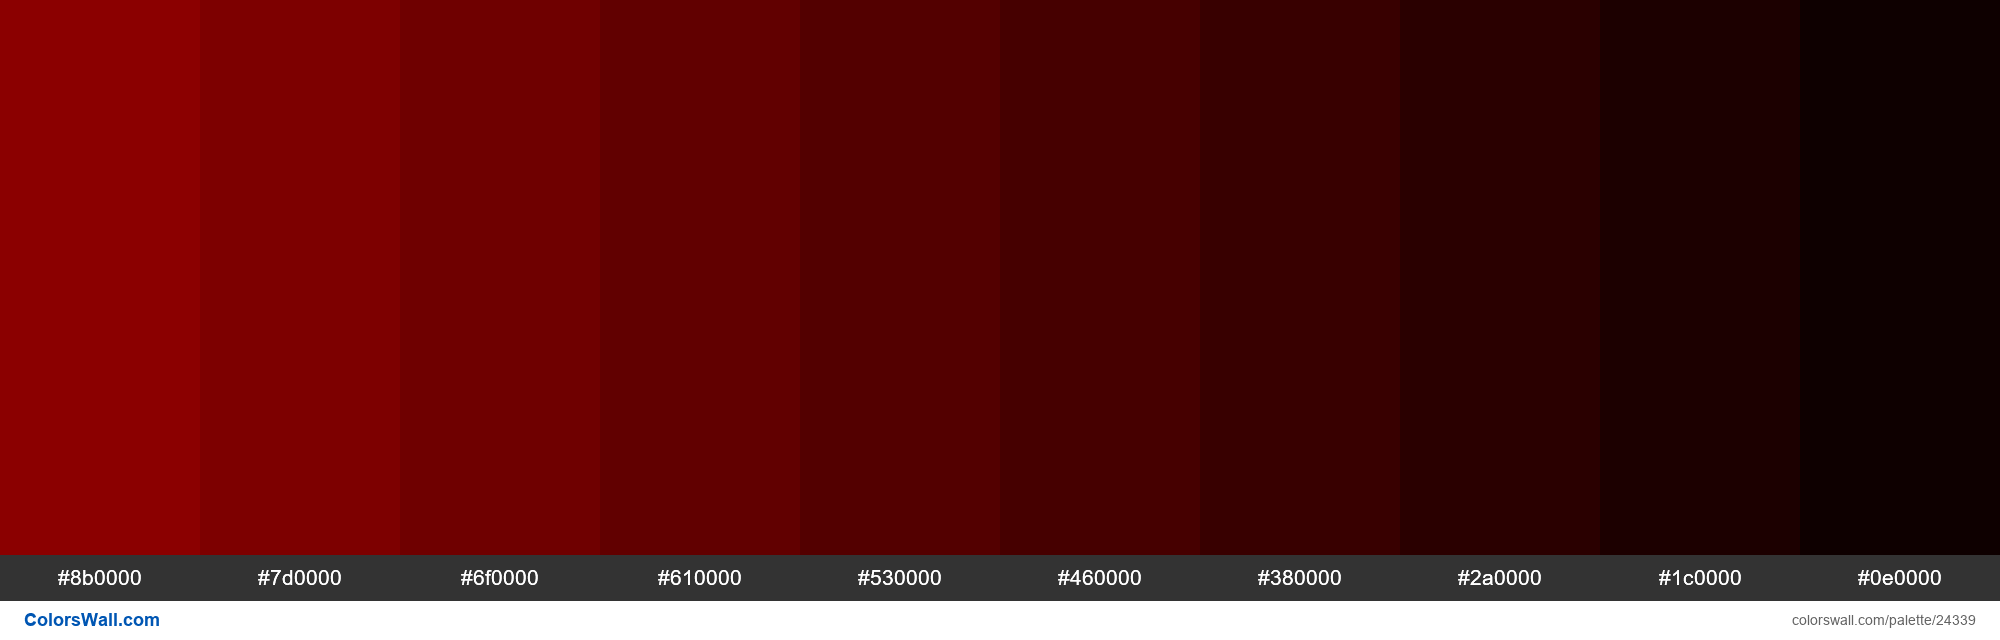 Shades of Dark Red #8B0000 hex color - #24339